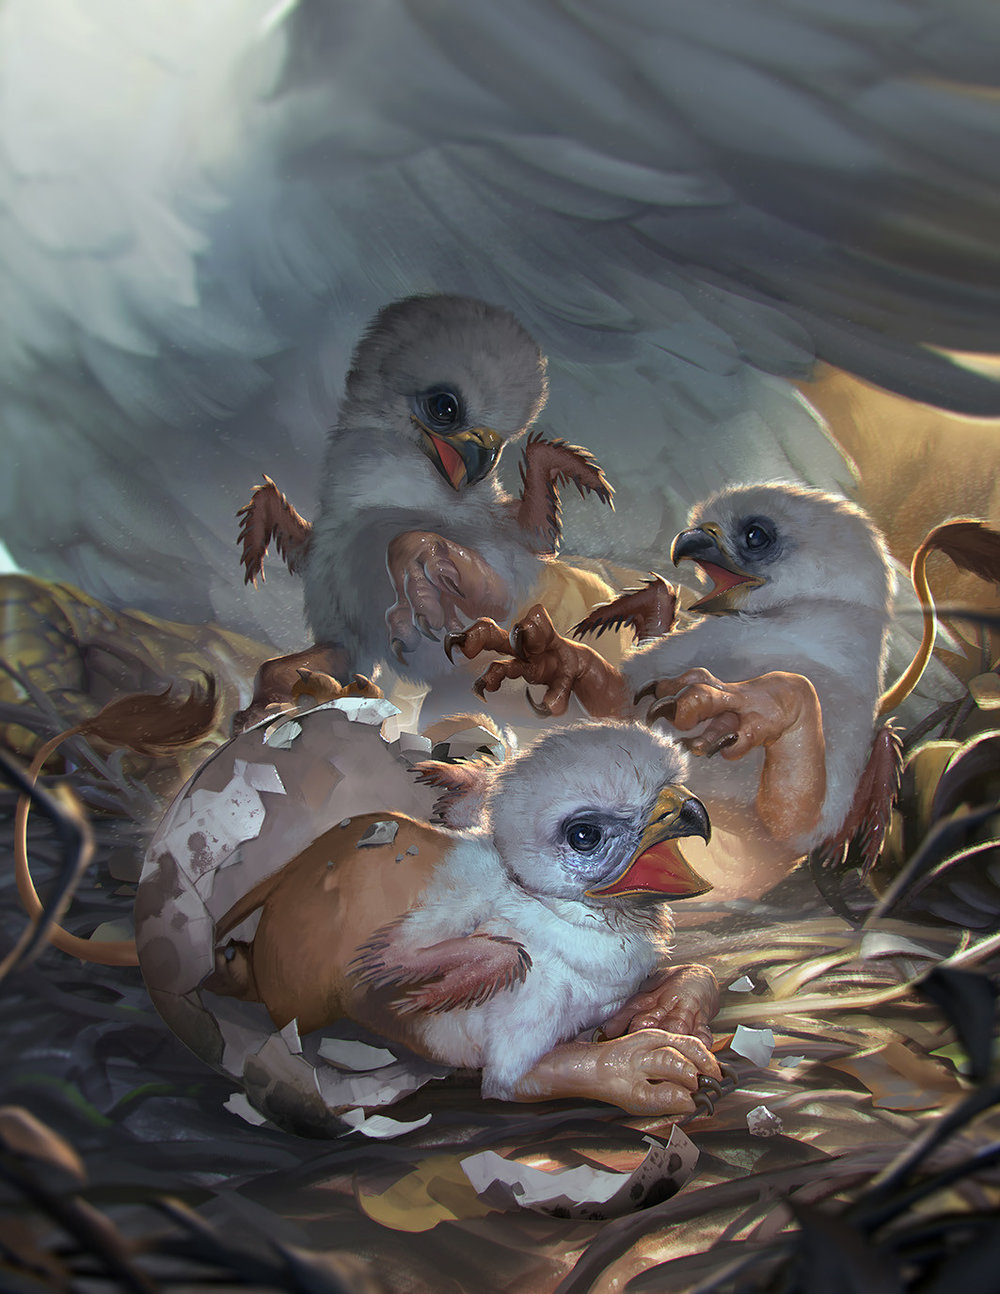 rudy-siswanto-griffon-hatchling-color.jpg